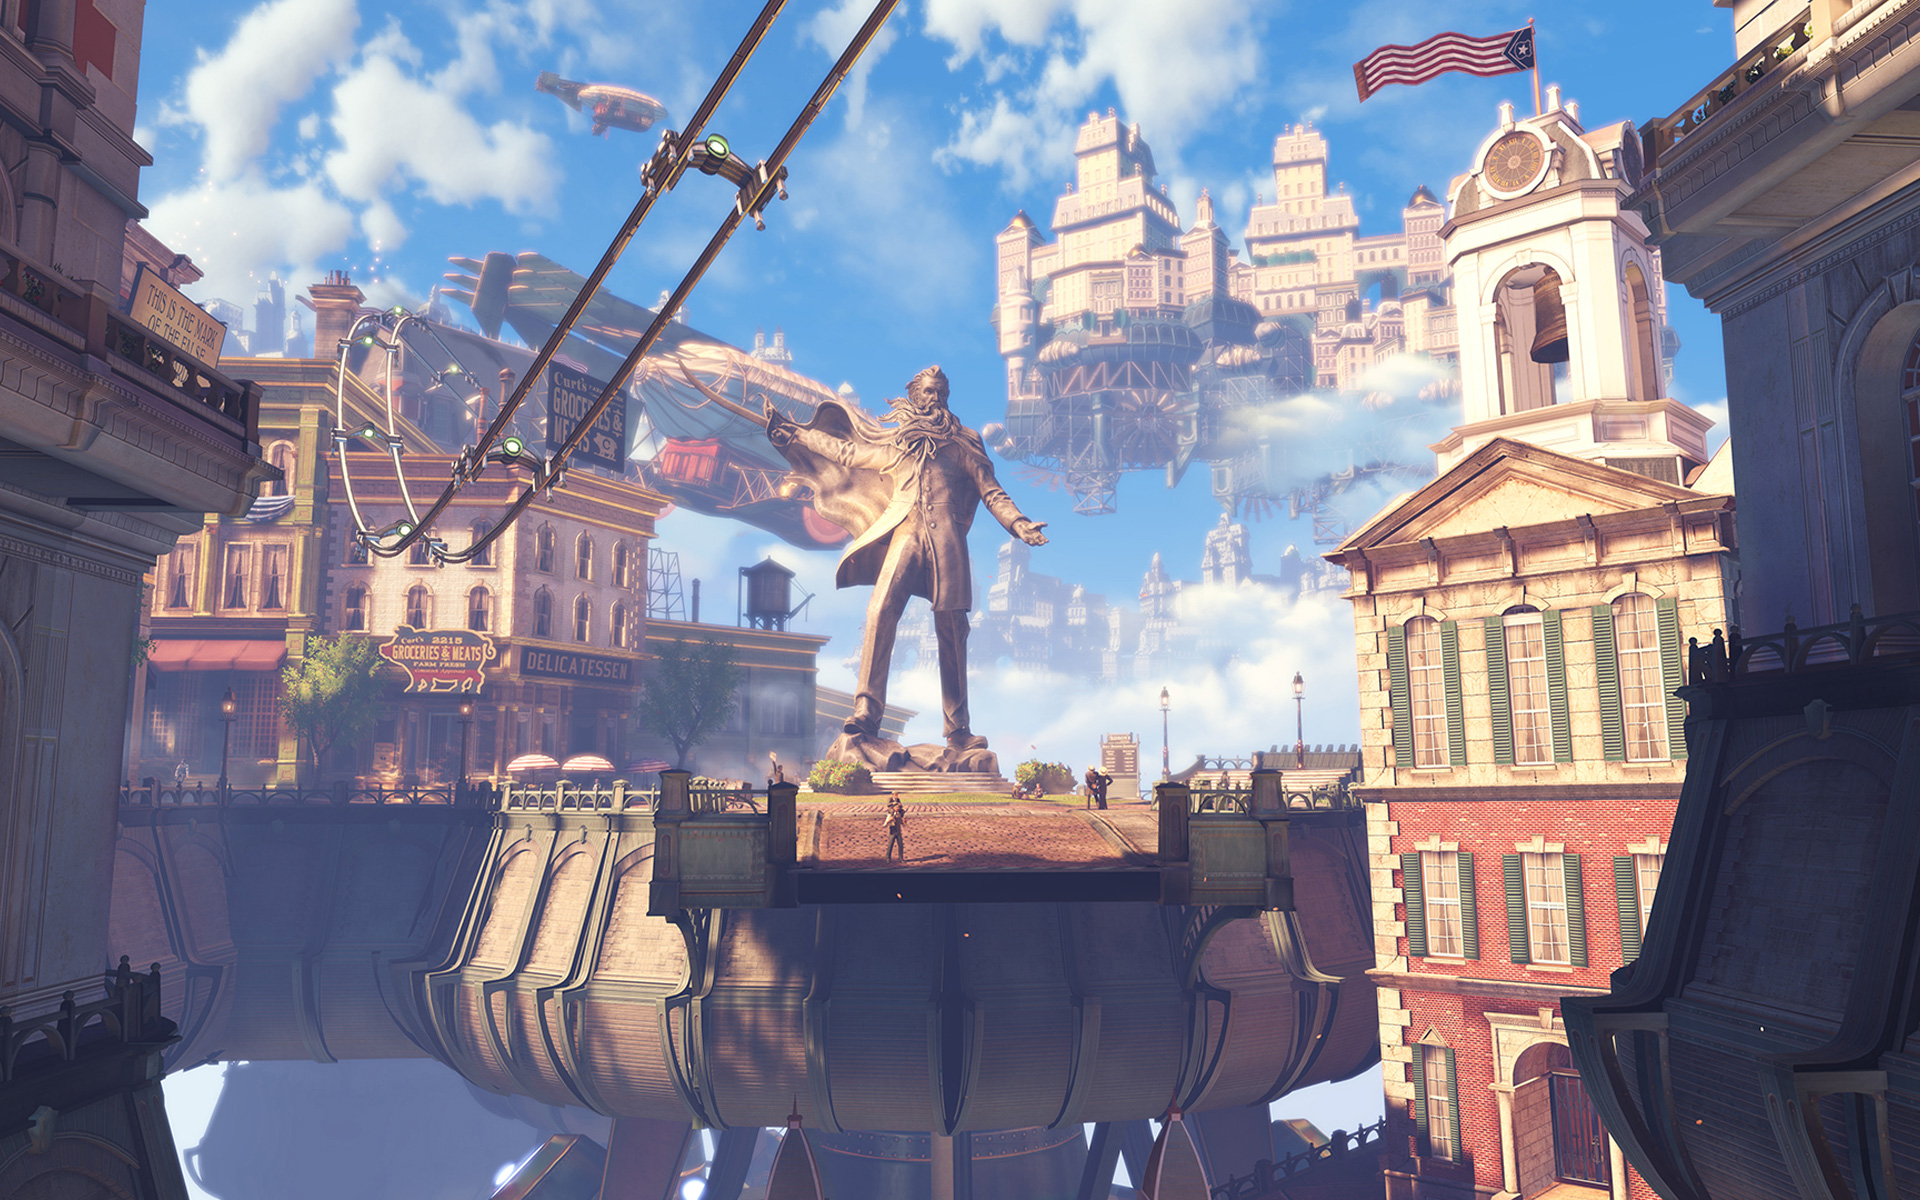 Bioshock Infinite Wallpaper in 1920x1200